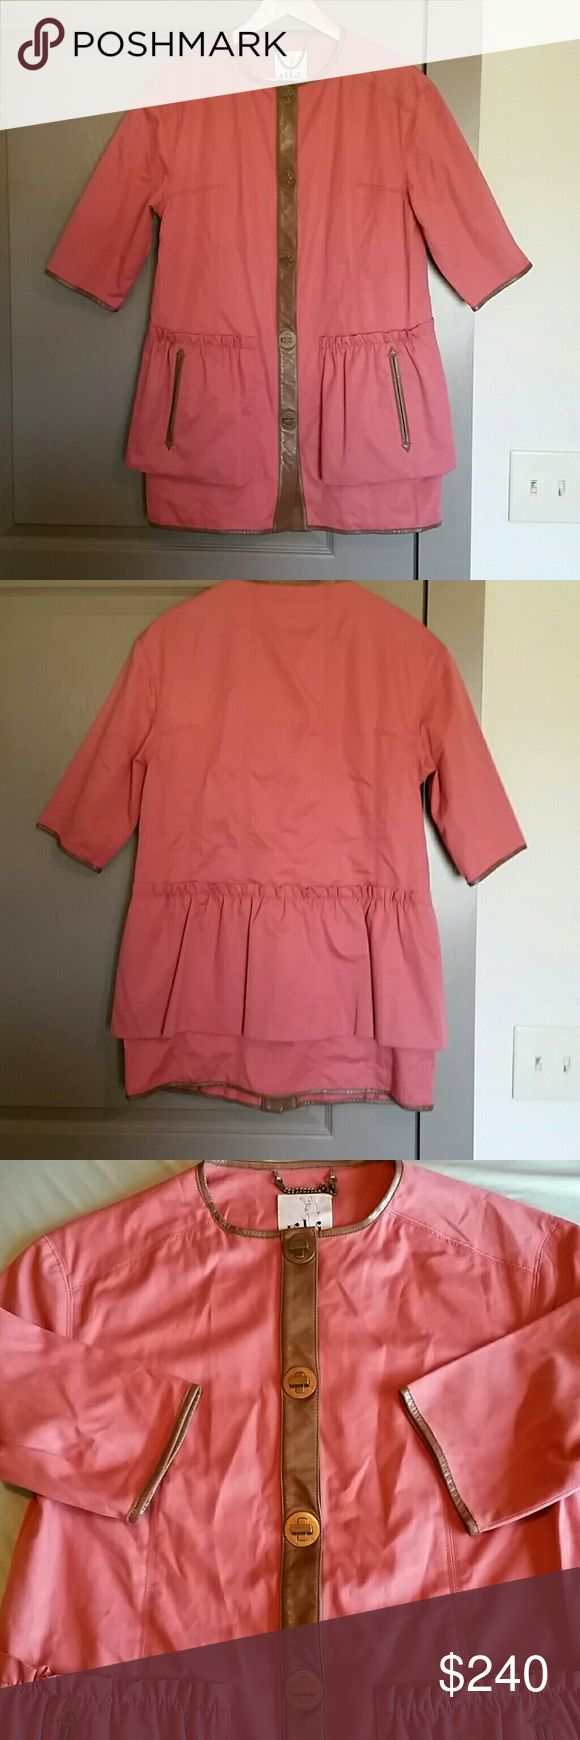 "Tibi Pink Cotton/Leather Jacket size 2 Beautiful dark salmon color with brown leather trim around neck, sleeves, pockets and lock closures. Ruffles top front pockets and accent back. Measures approximately 20"" from pit to pit, 33"" from collar to bottom hem, 13"" sleeves. Tibi Jackets & Coats"